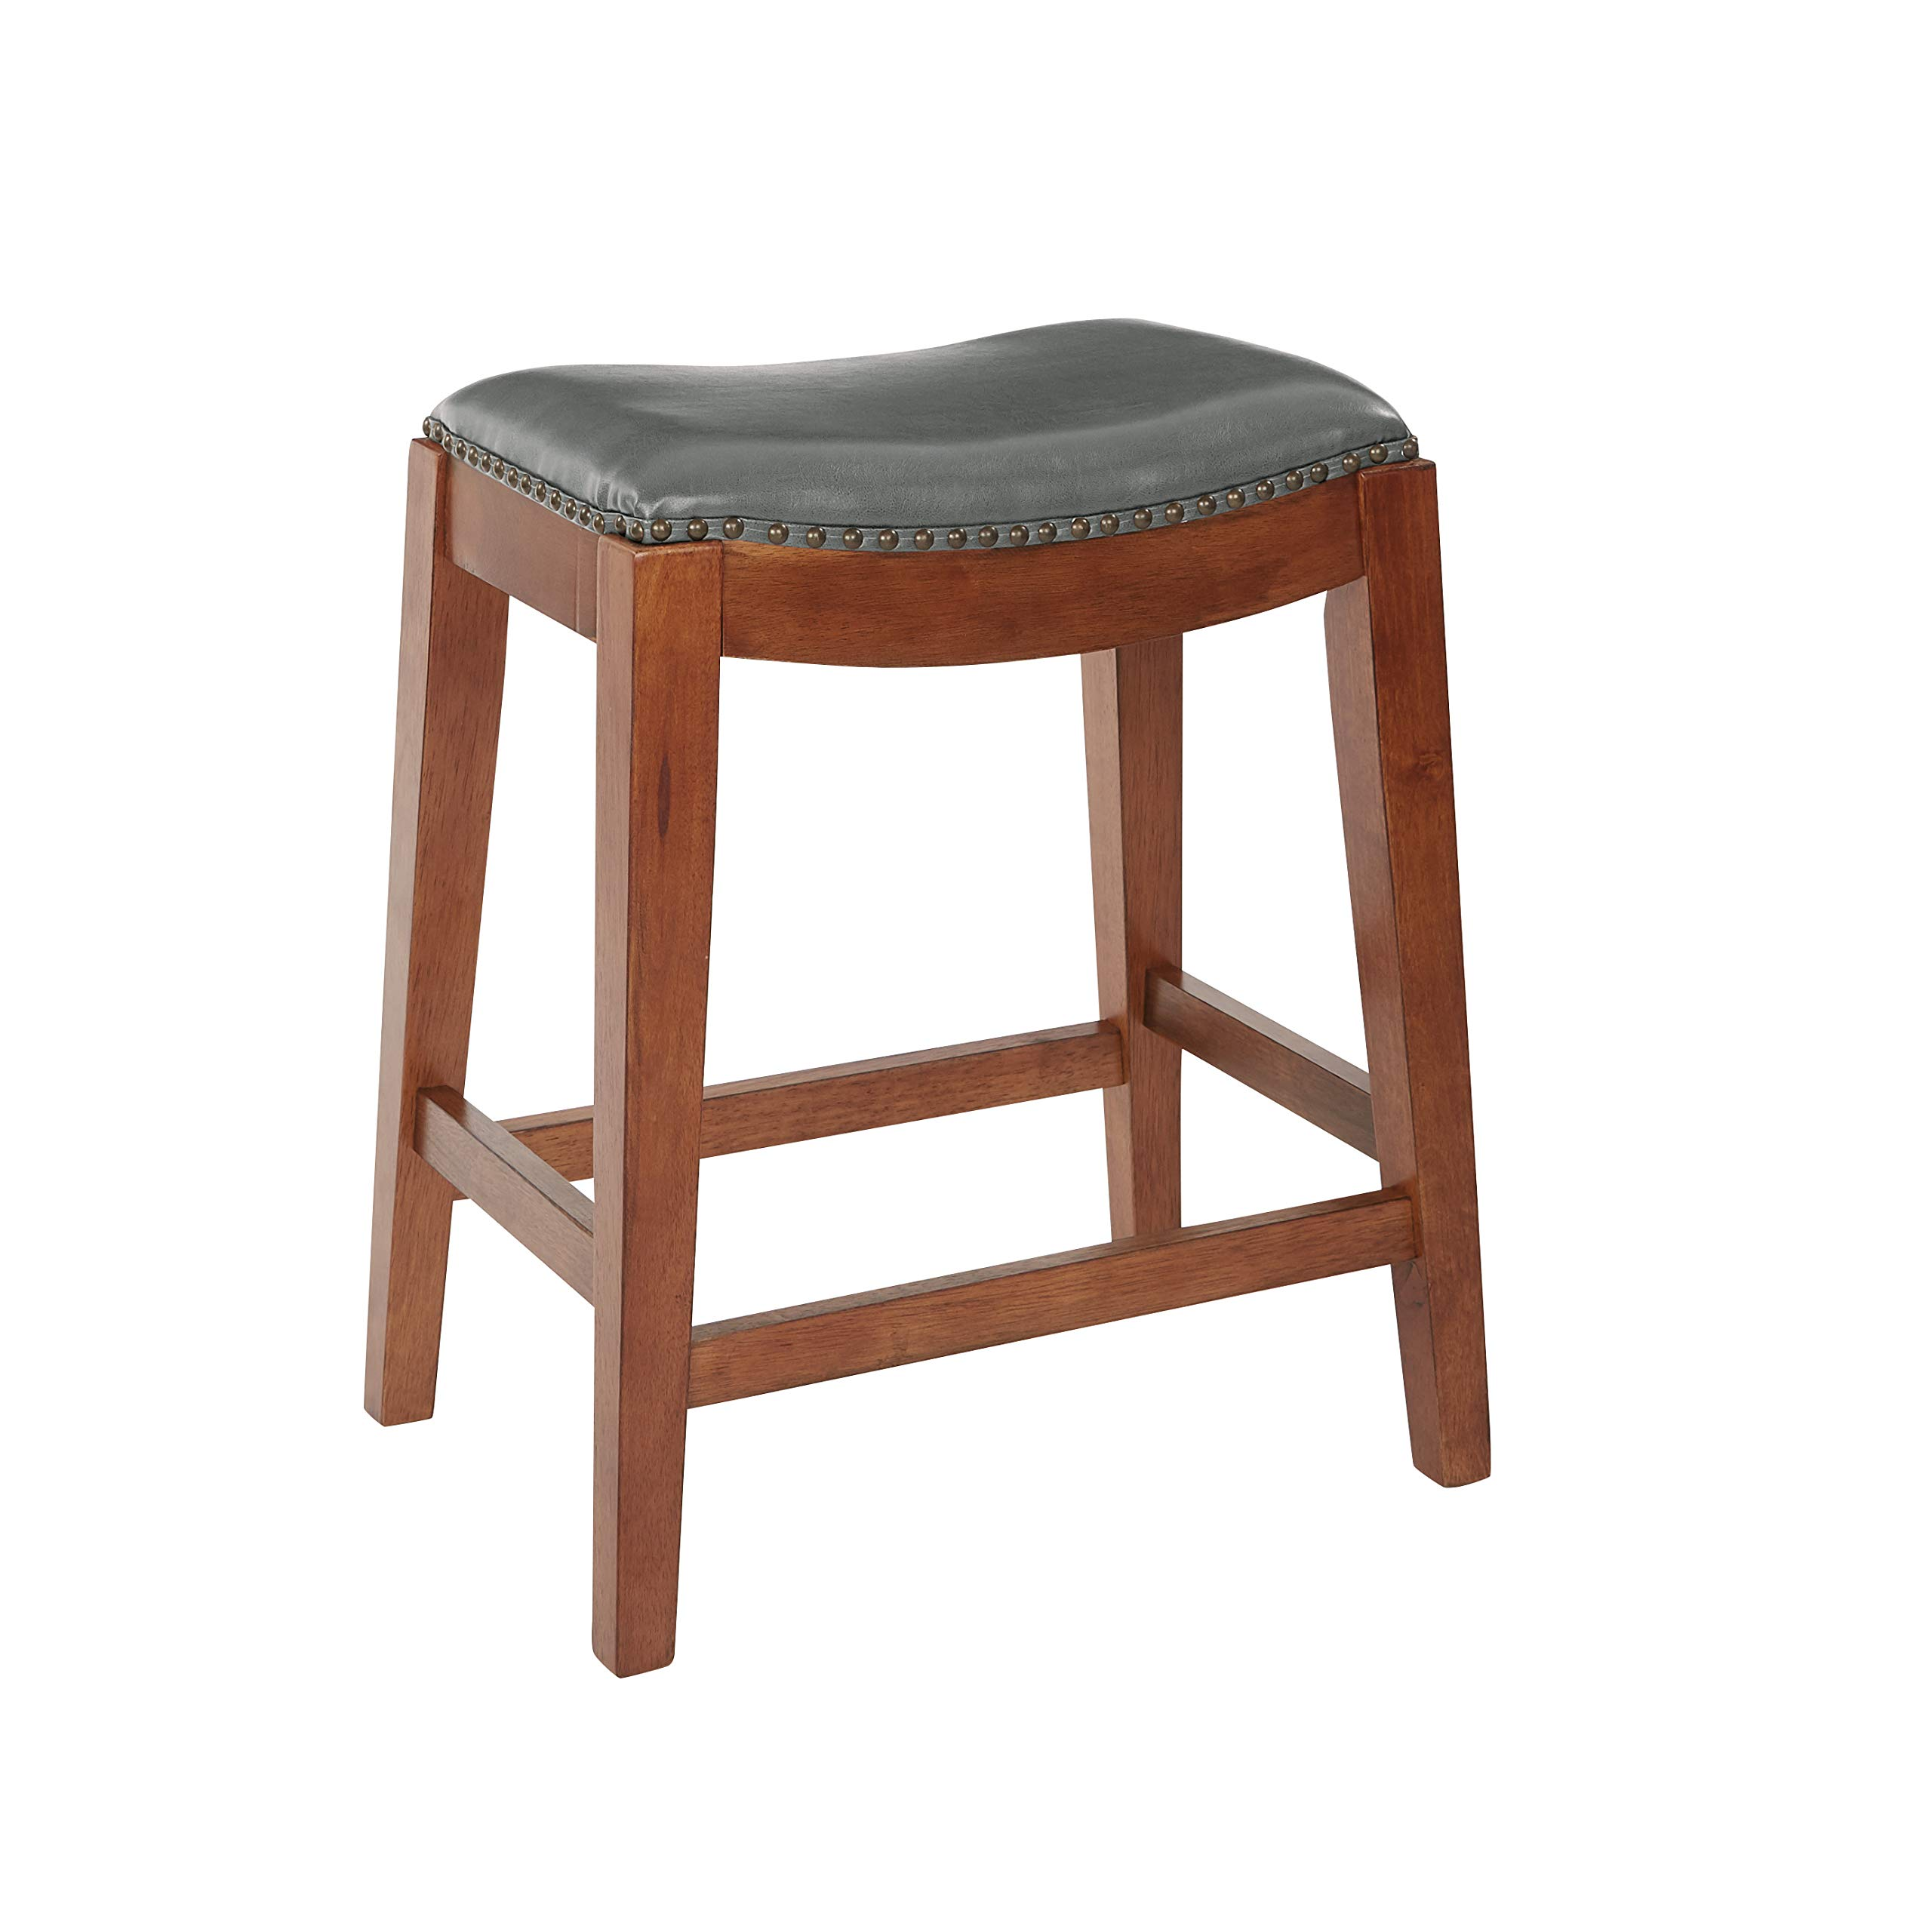 Office Star Metro Bonded Leather Counter-Height Saddle Stool with Nail Head Accents and Espresso Finished Legs, 24-Inch, Pewter by Office Star